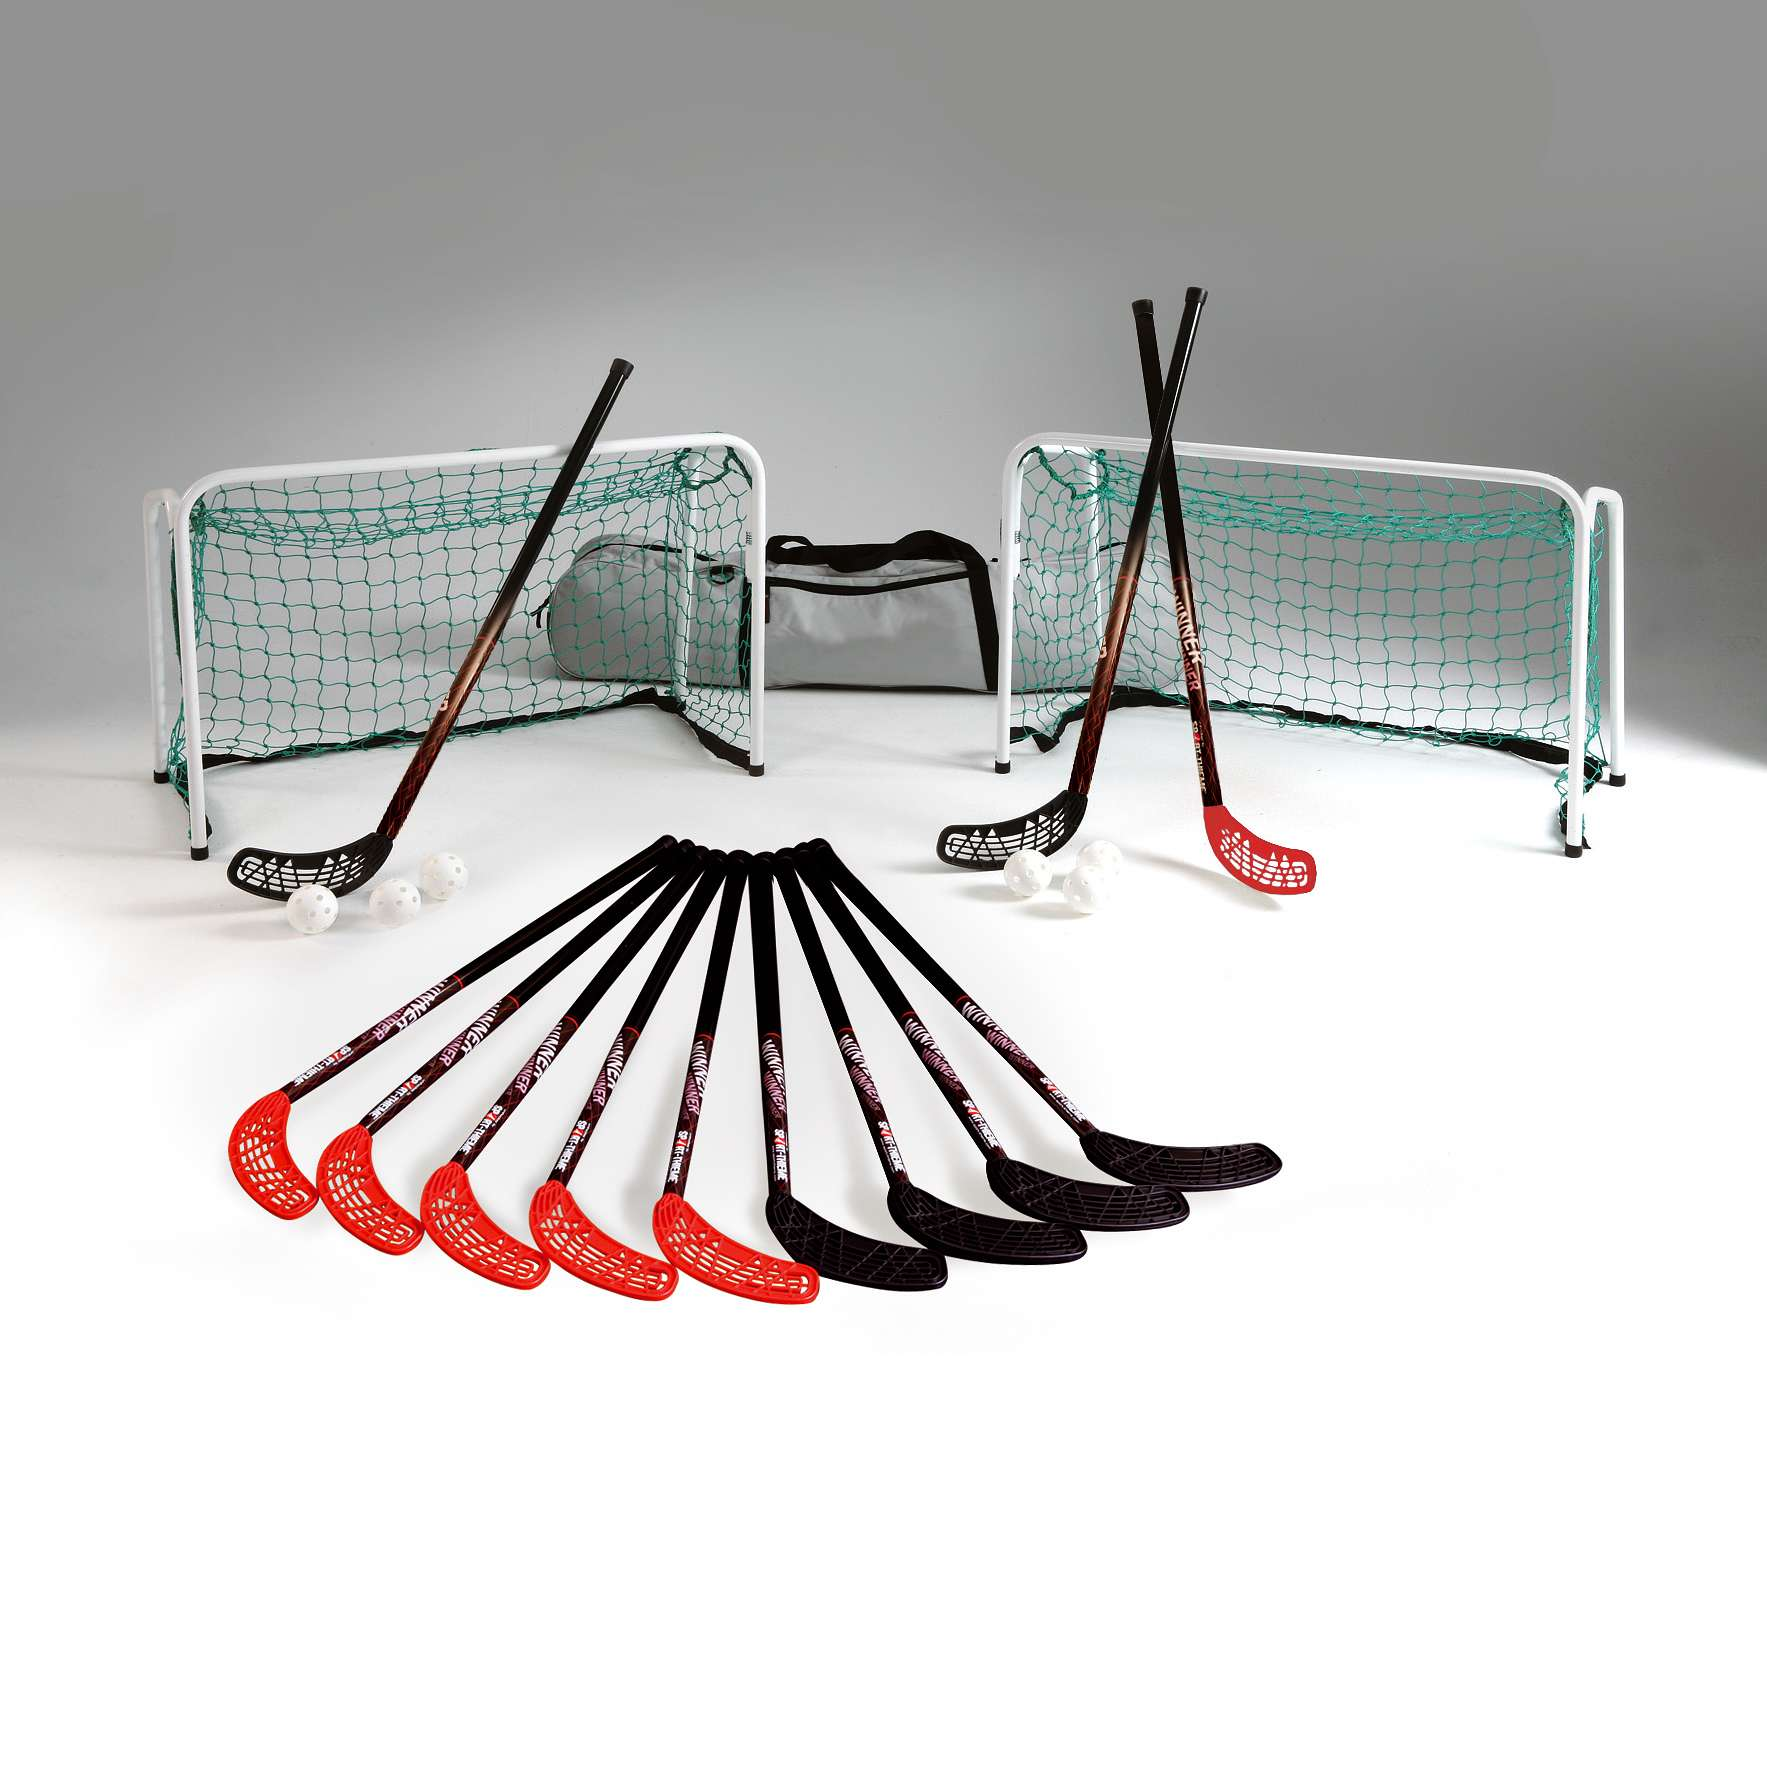 "Sport-Thieme Floorball Kombi-Set ""Winner"" von Sport-Thieme"